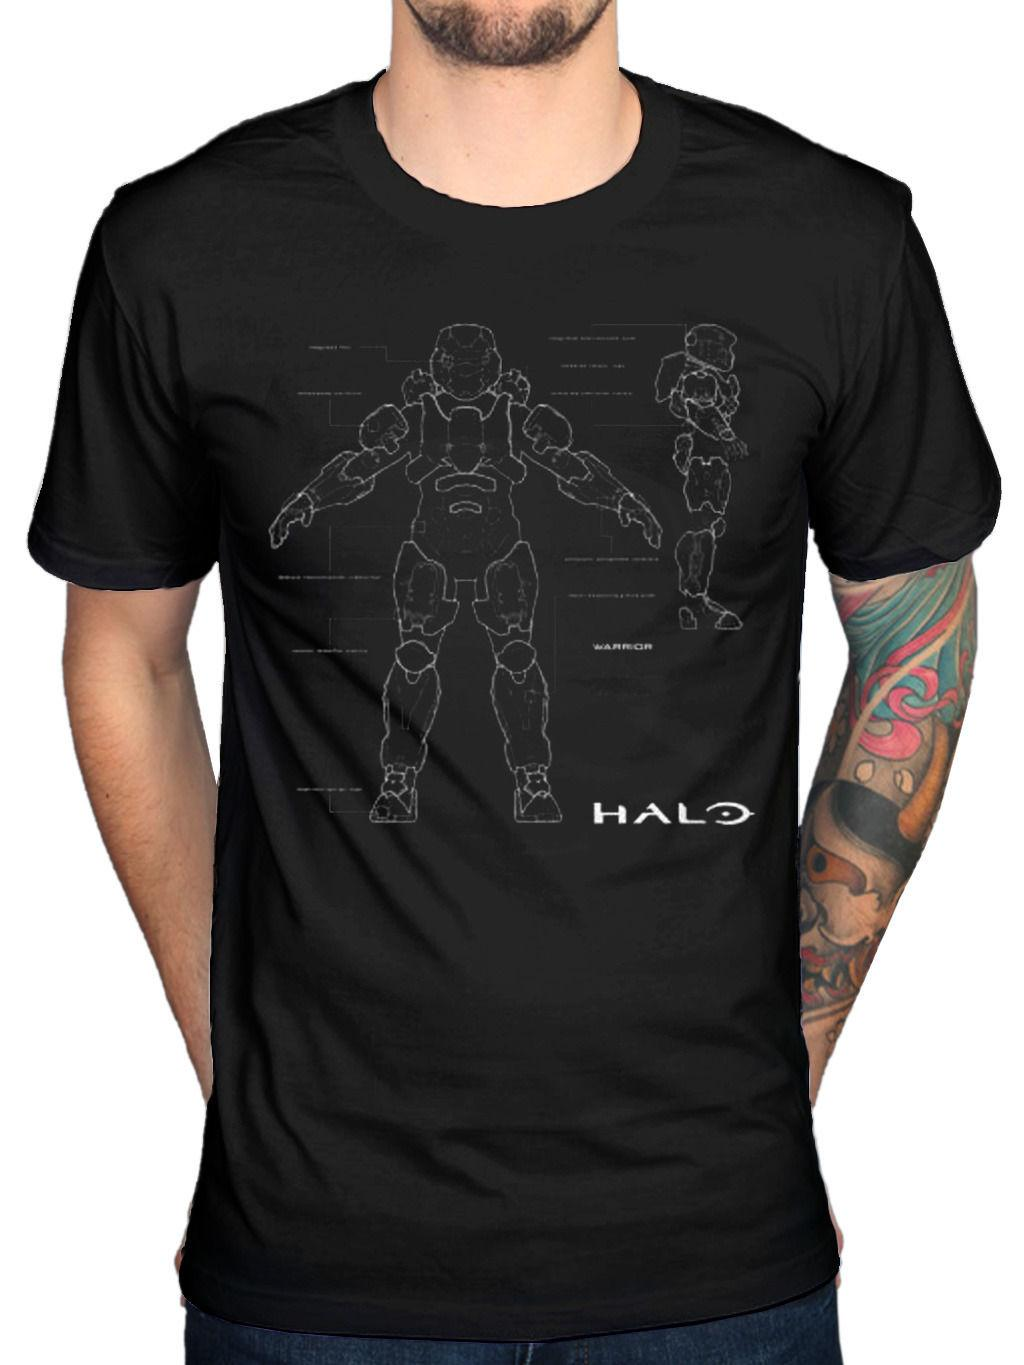 Official Halo 5 Anatomy T Shirt Team Chief Forerunners Spartans X